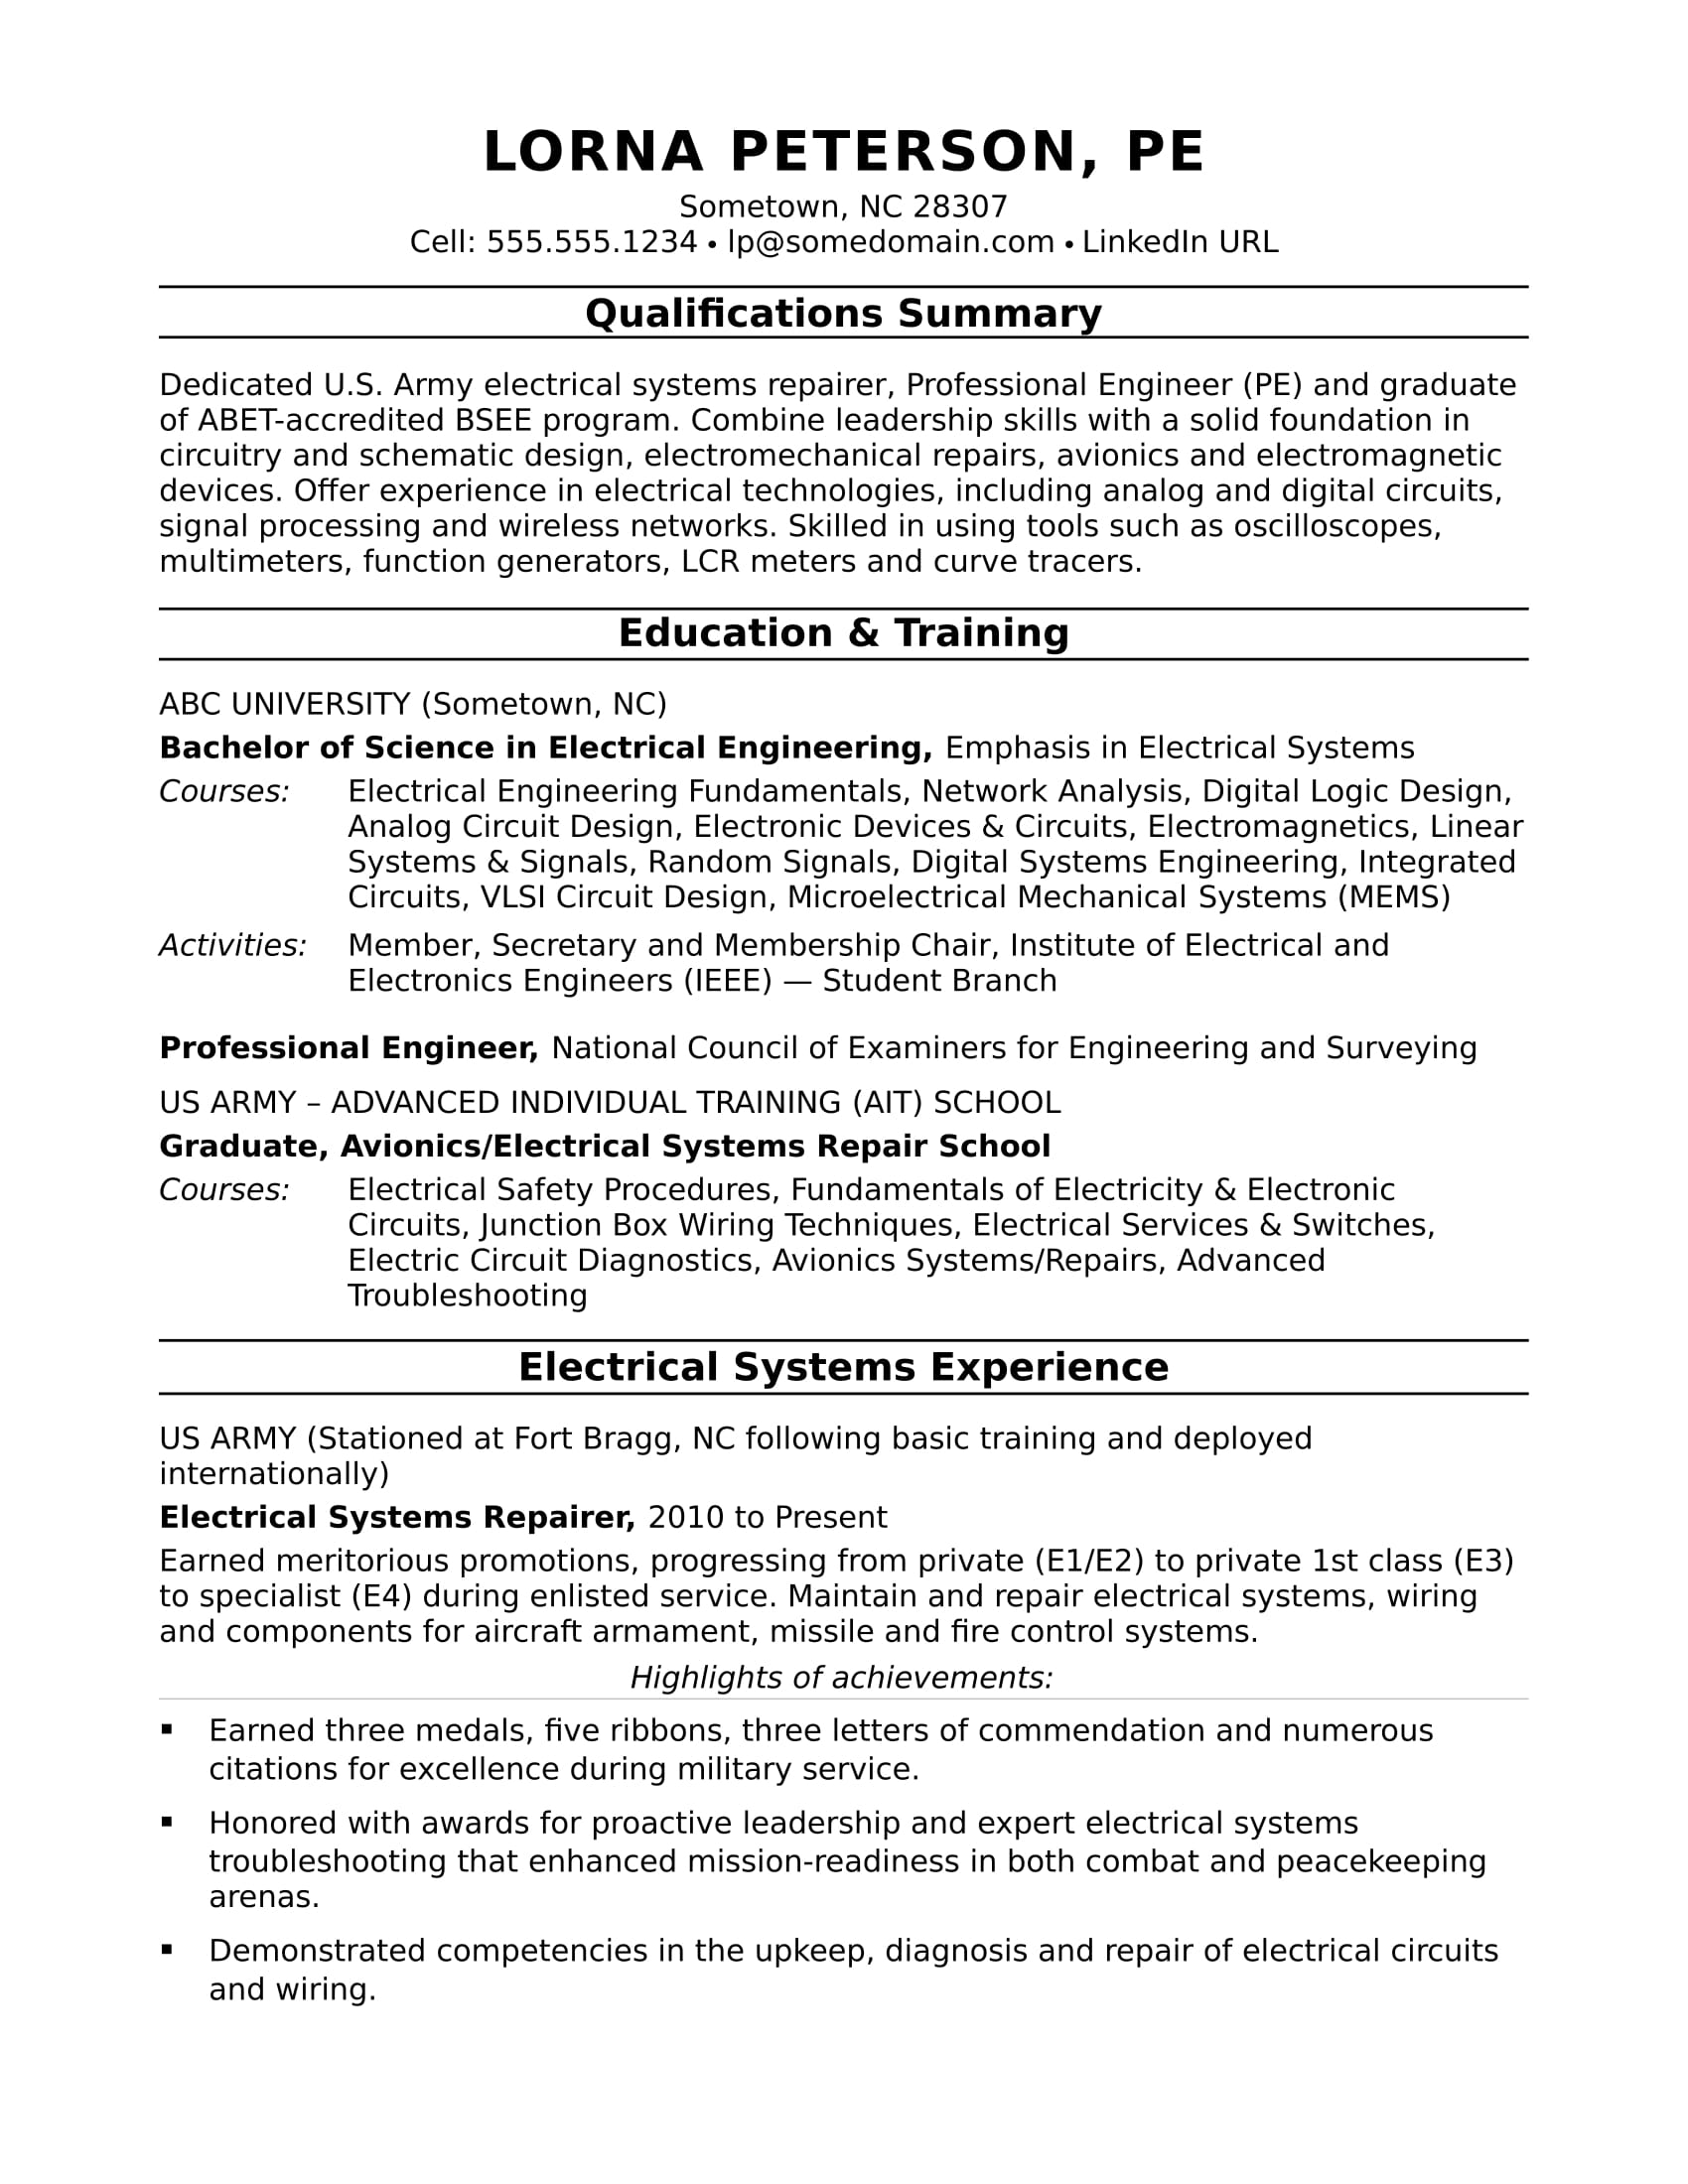 Sample Resume For A Midlevel Electrical Engineer Services Integrated Circuit Technologies